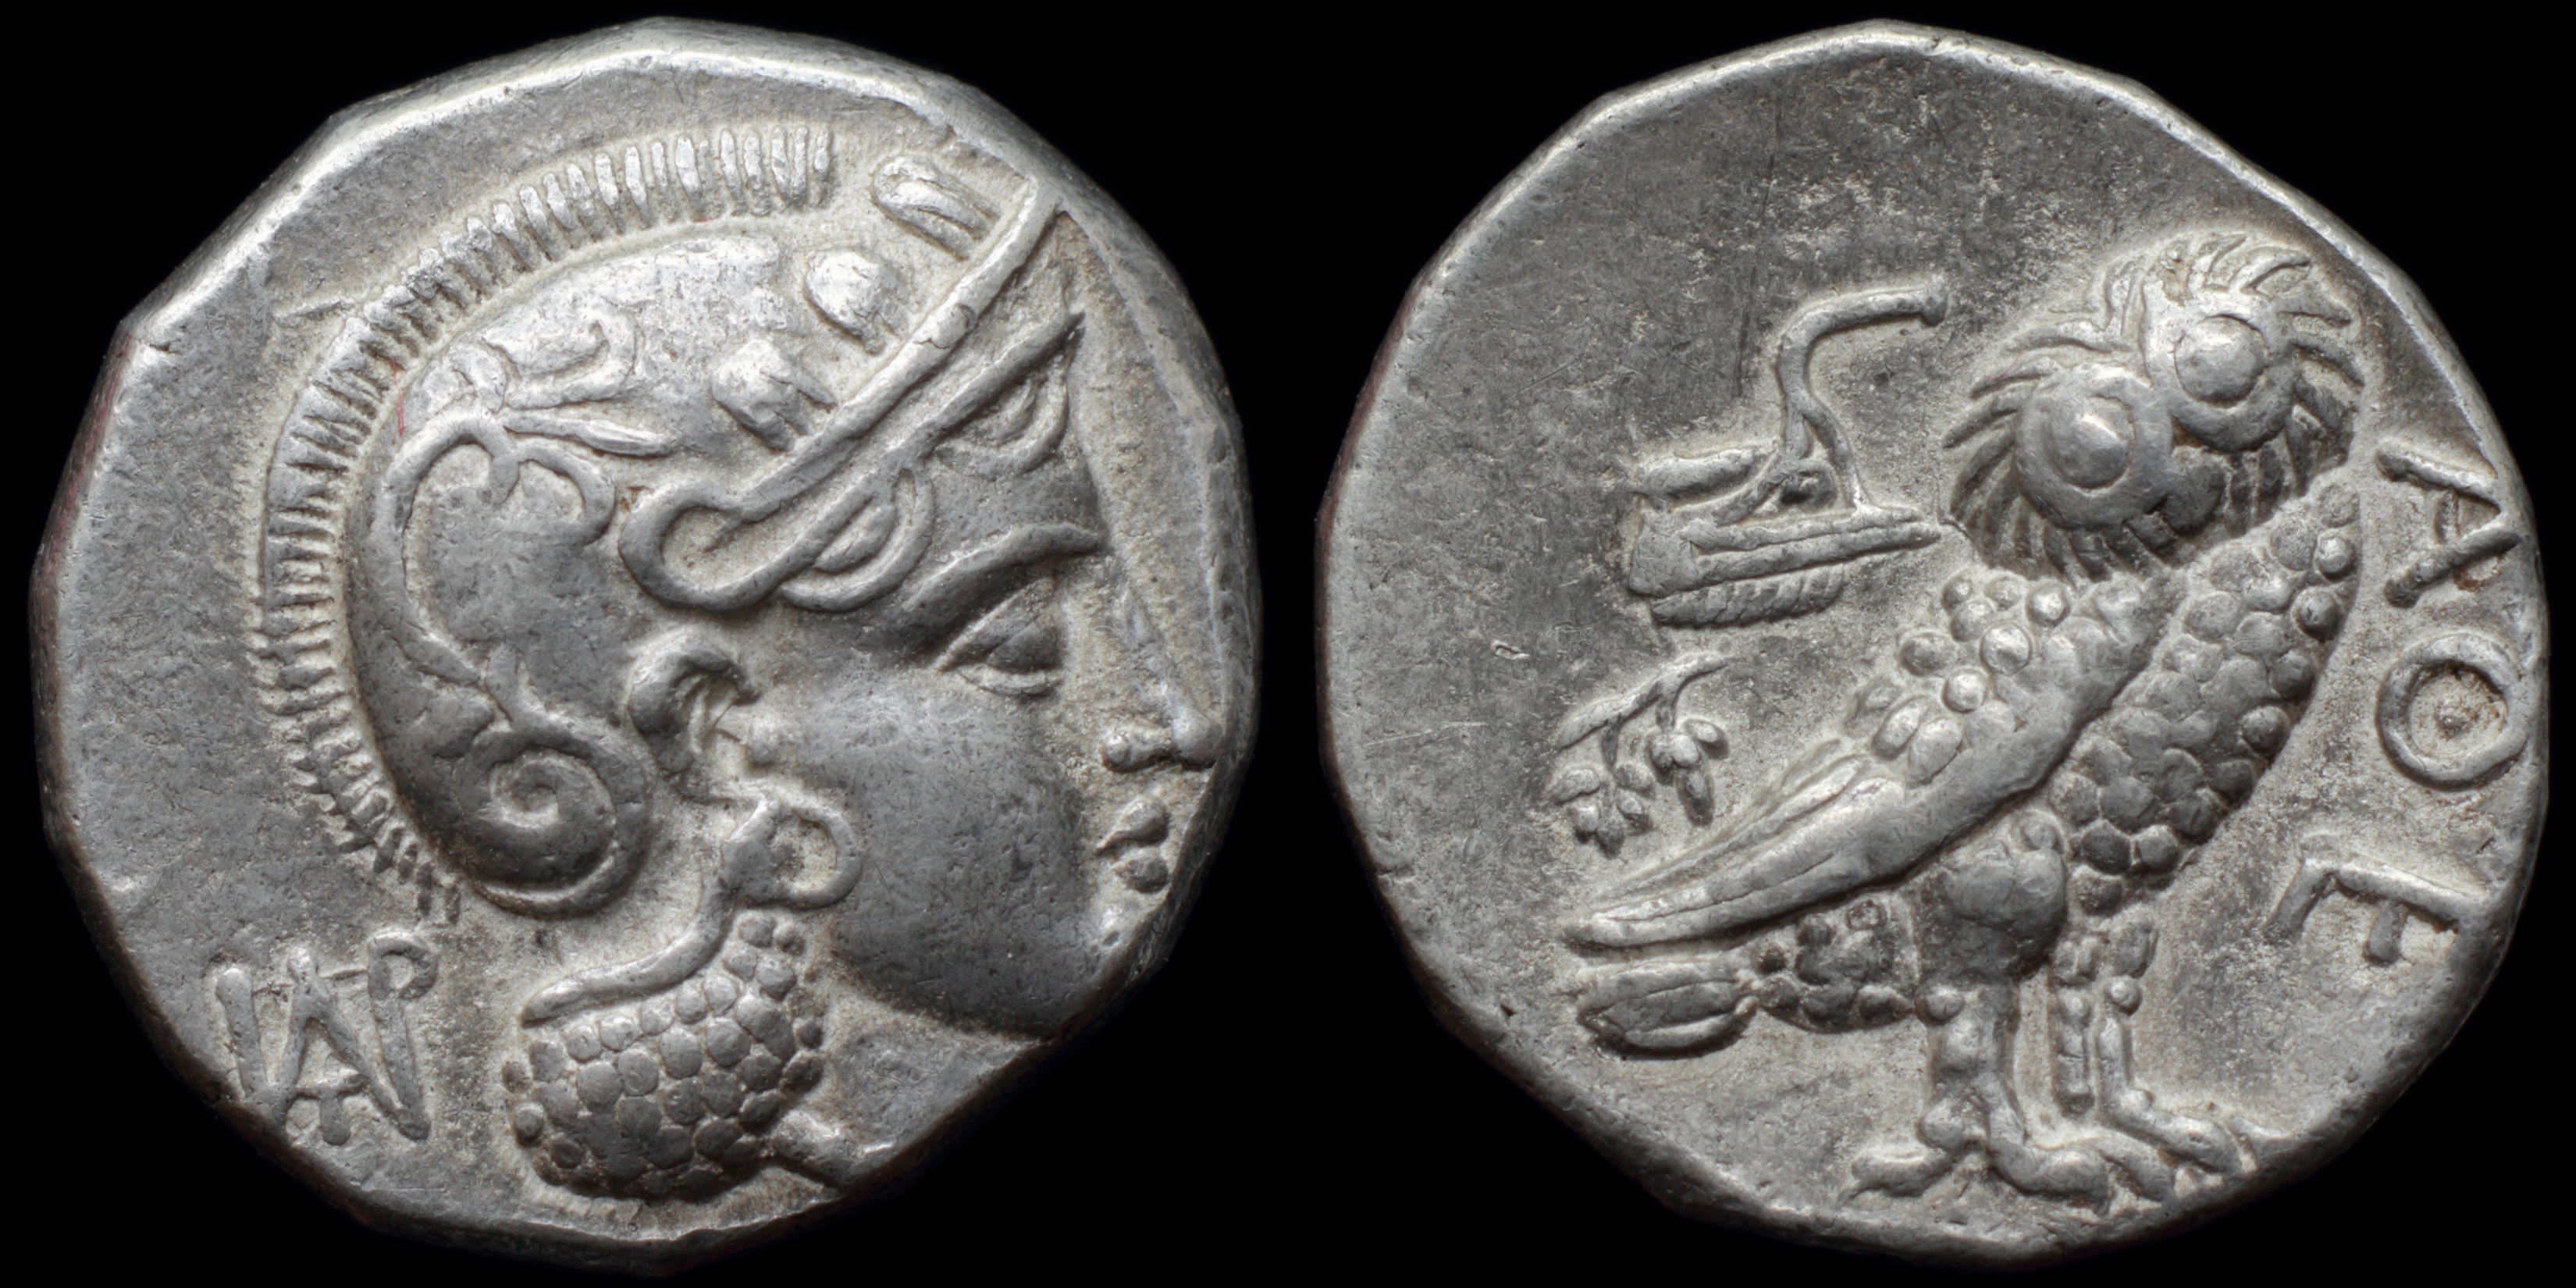 /Files/Images/Coinsite/CoinDB/1475_Bactria_didrachm.jpg